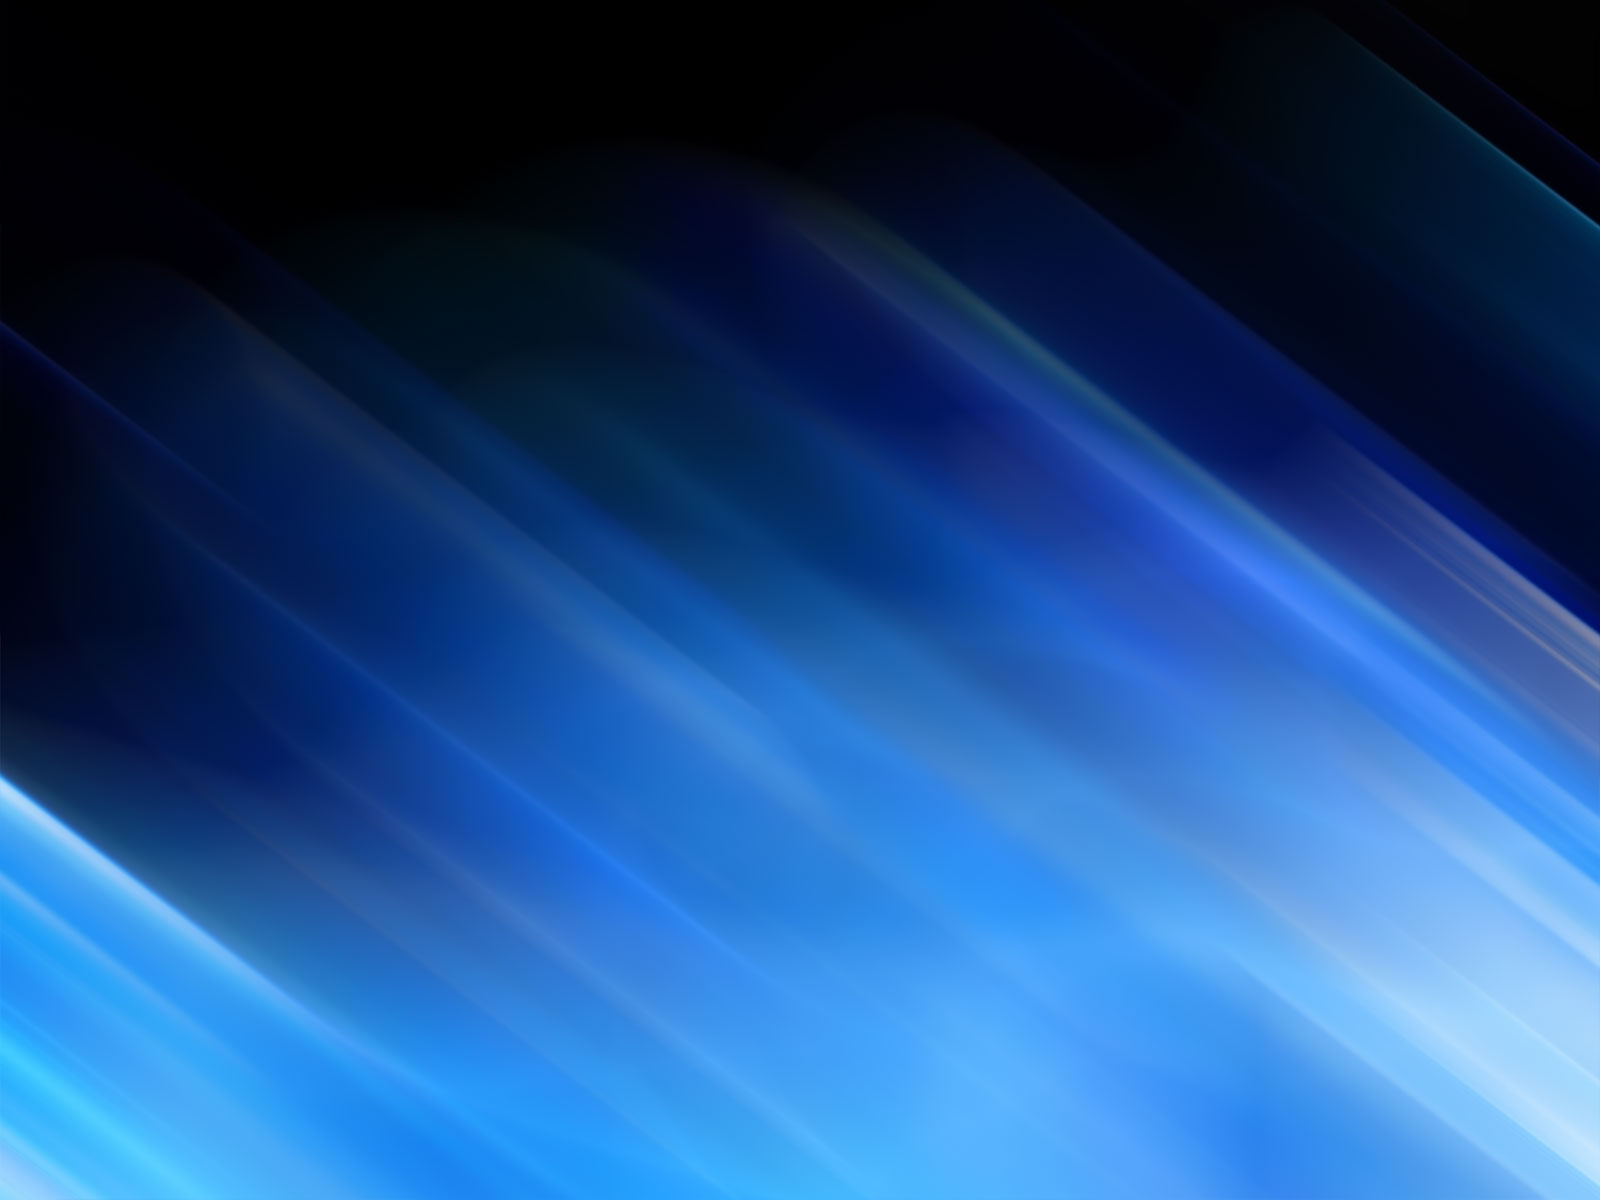 41 Free High Definition Blue Wallpapers For Download